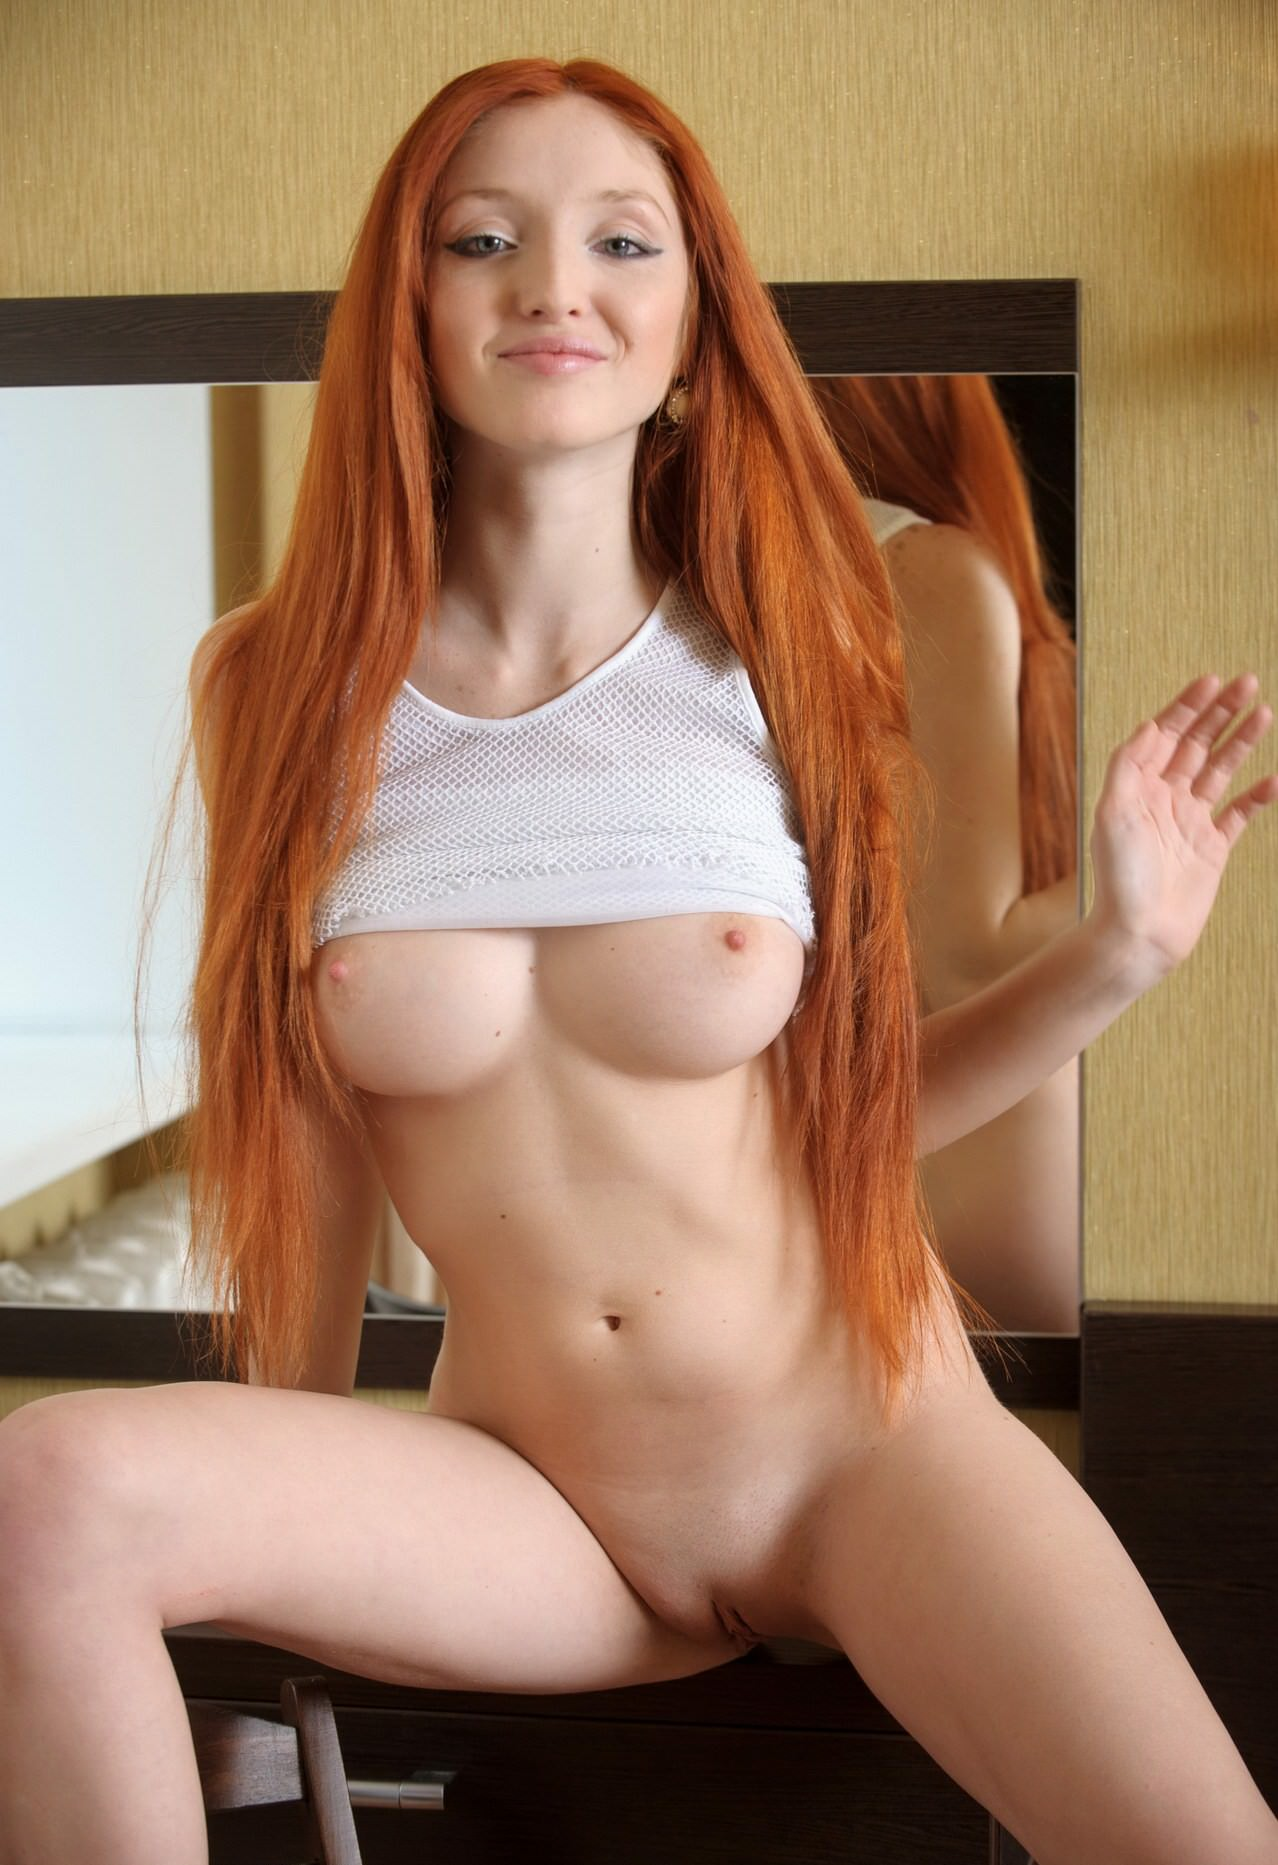 Young Pretty Sexy Ginger Girl High